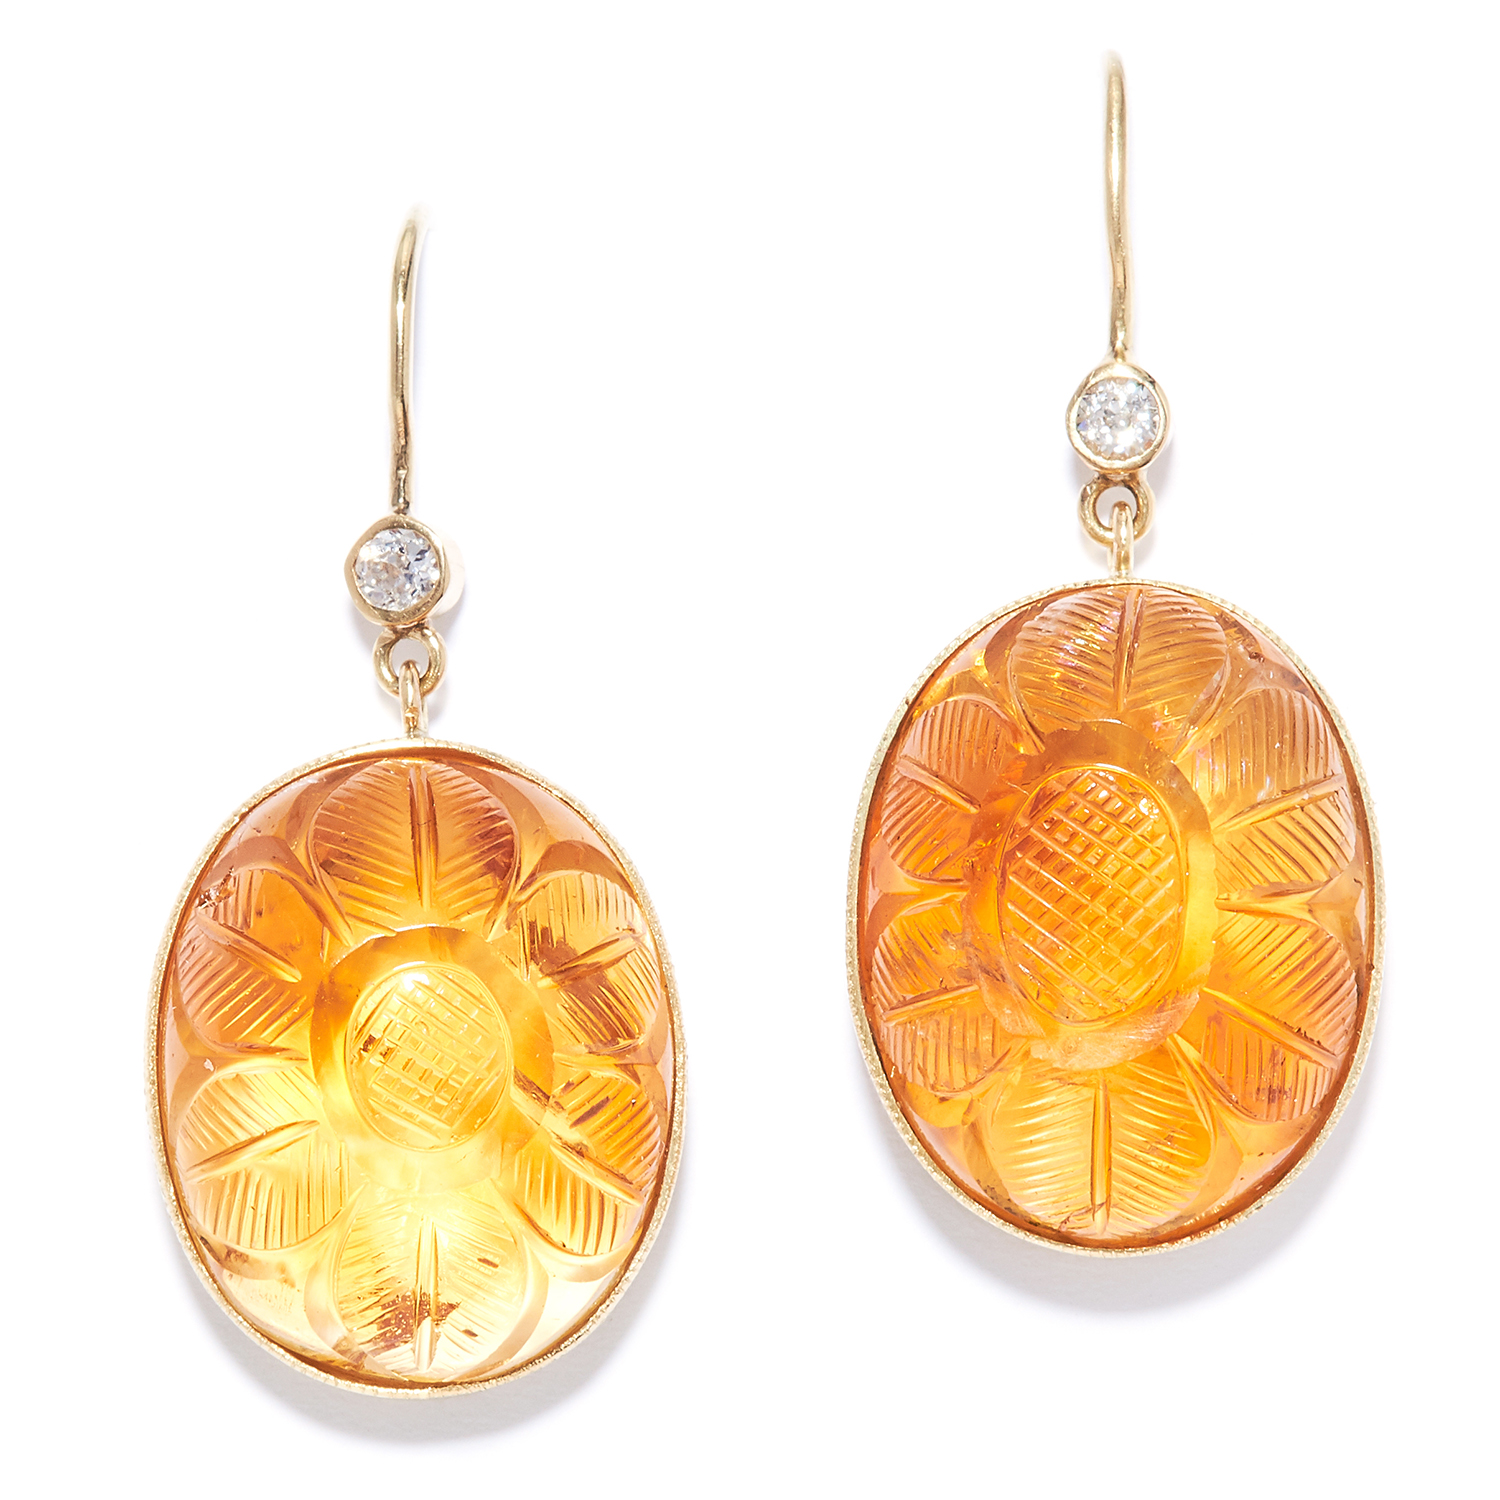 Los 15 - MUGHAL CARVED CITRINE AND DIAMOND EARRINGS in yellow gold, each comprising of a round cut diamond